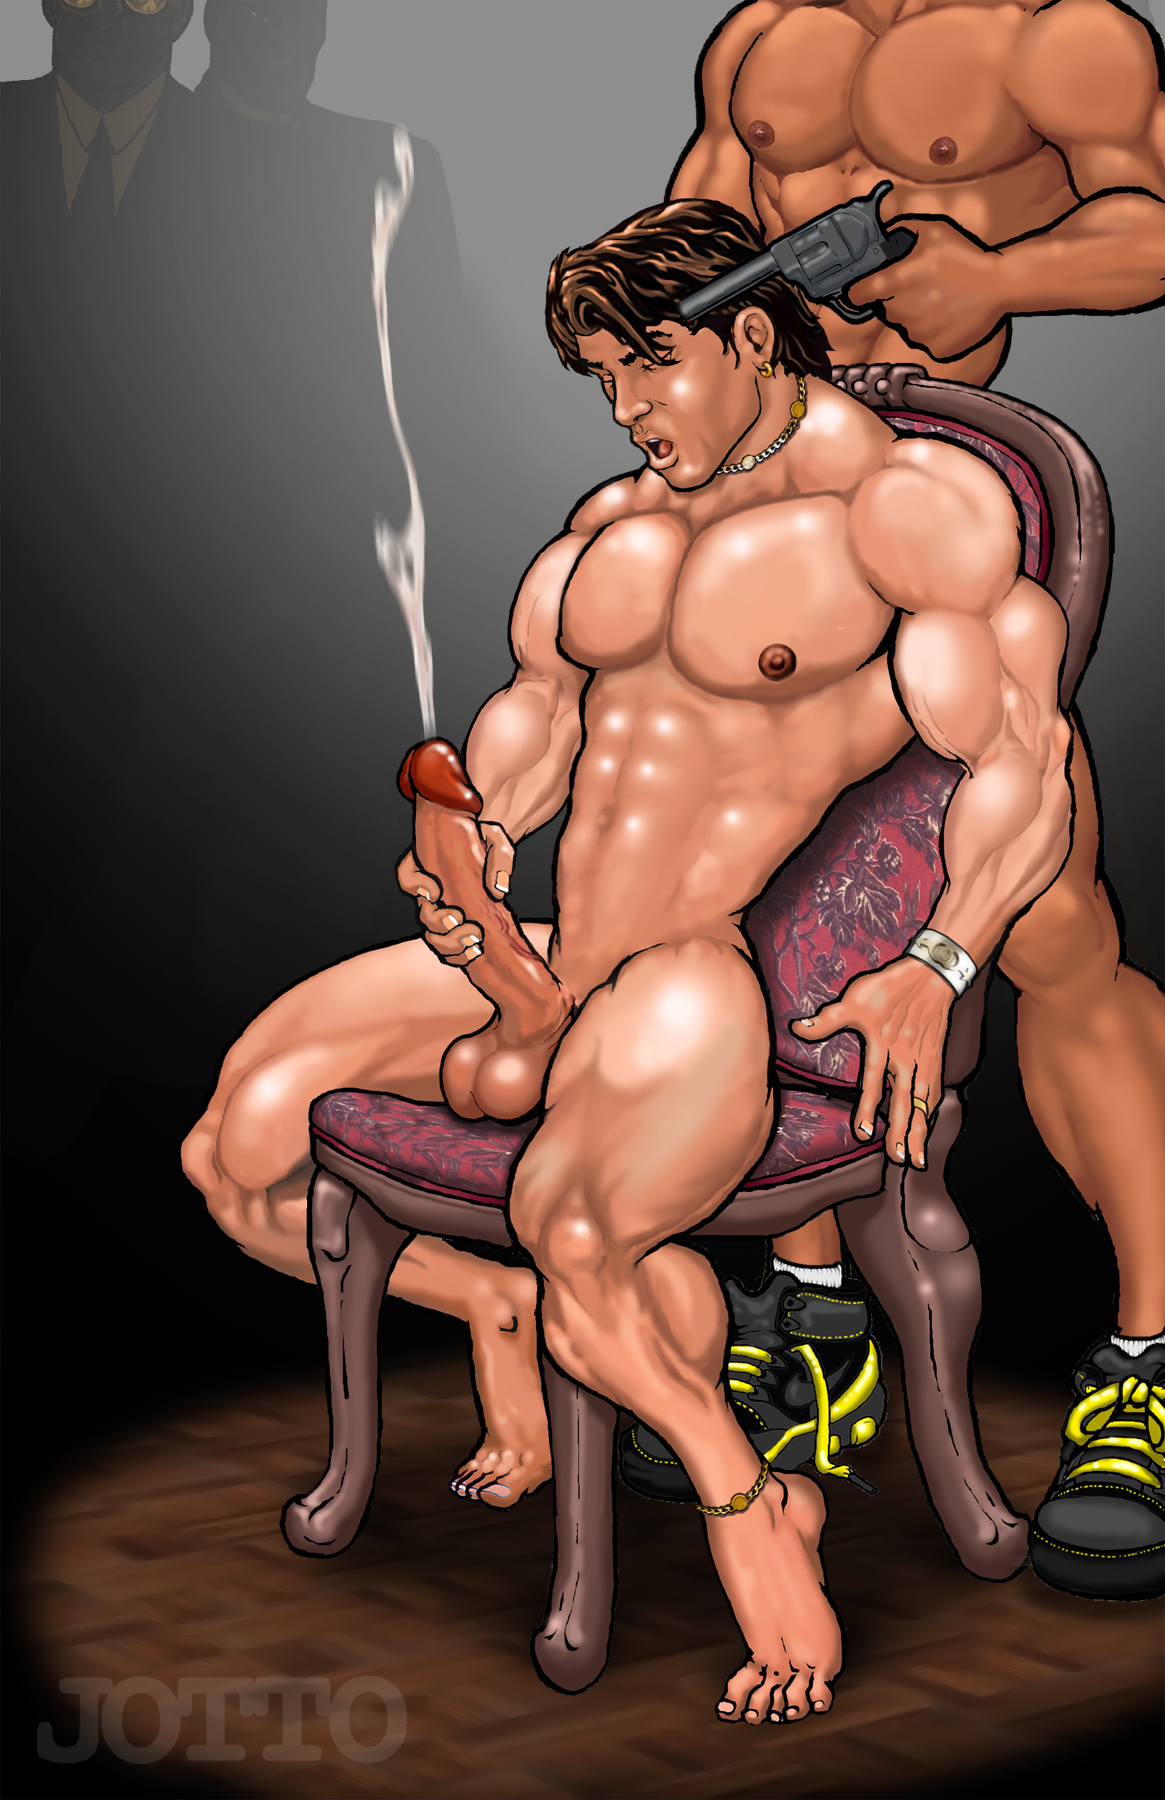 Soo sweet Cock milking cartoon fantasy